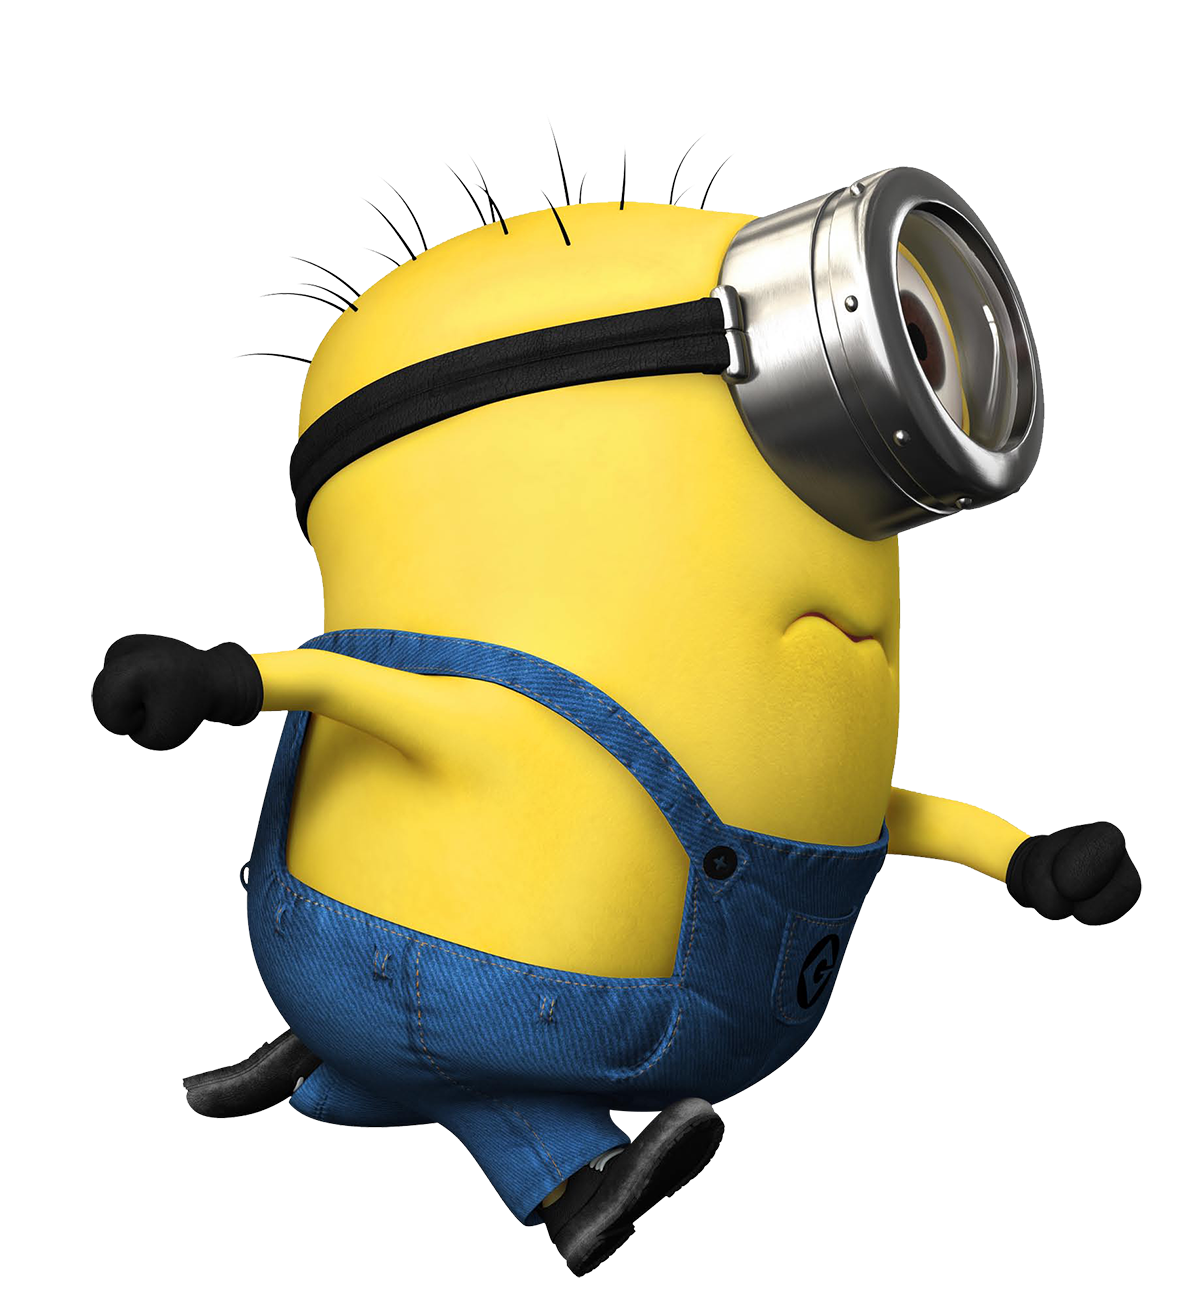 Minions clipart clear background. Png images free download